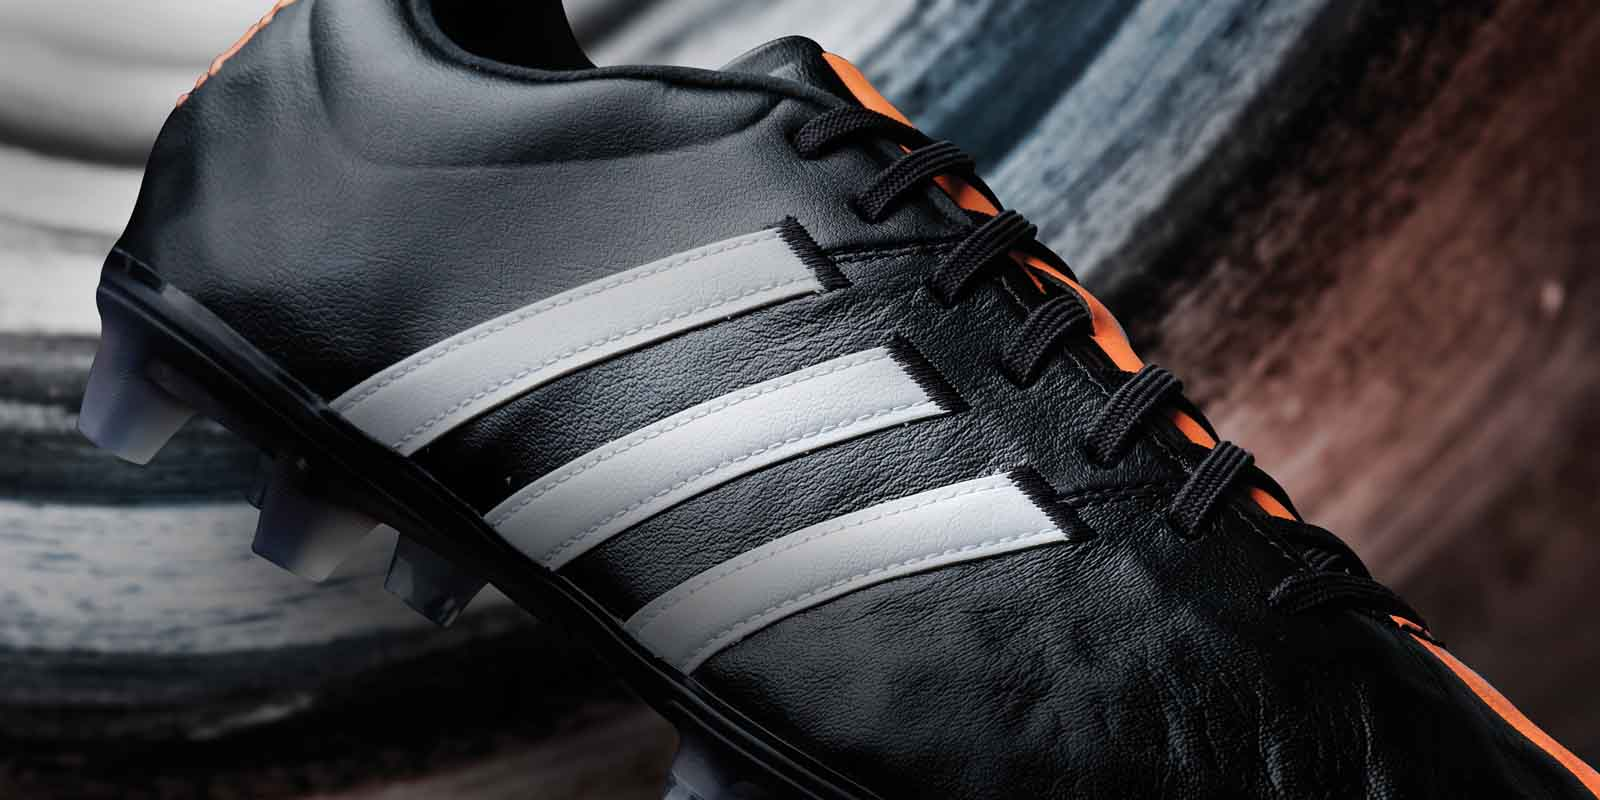 adidas adipure 11pro black orange